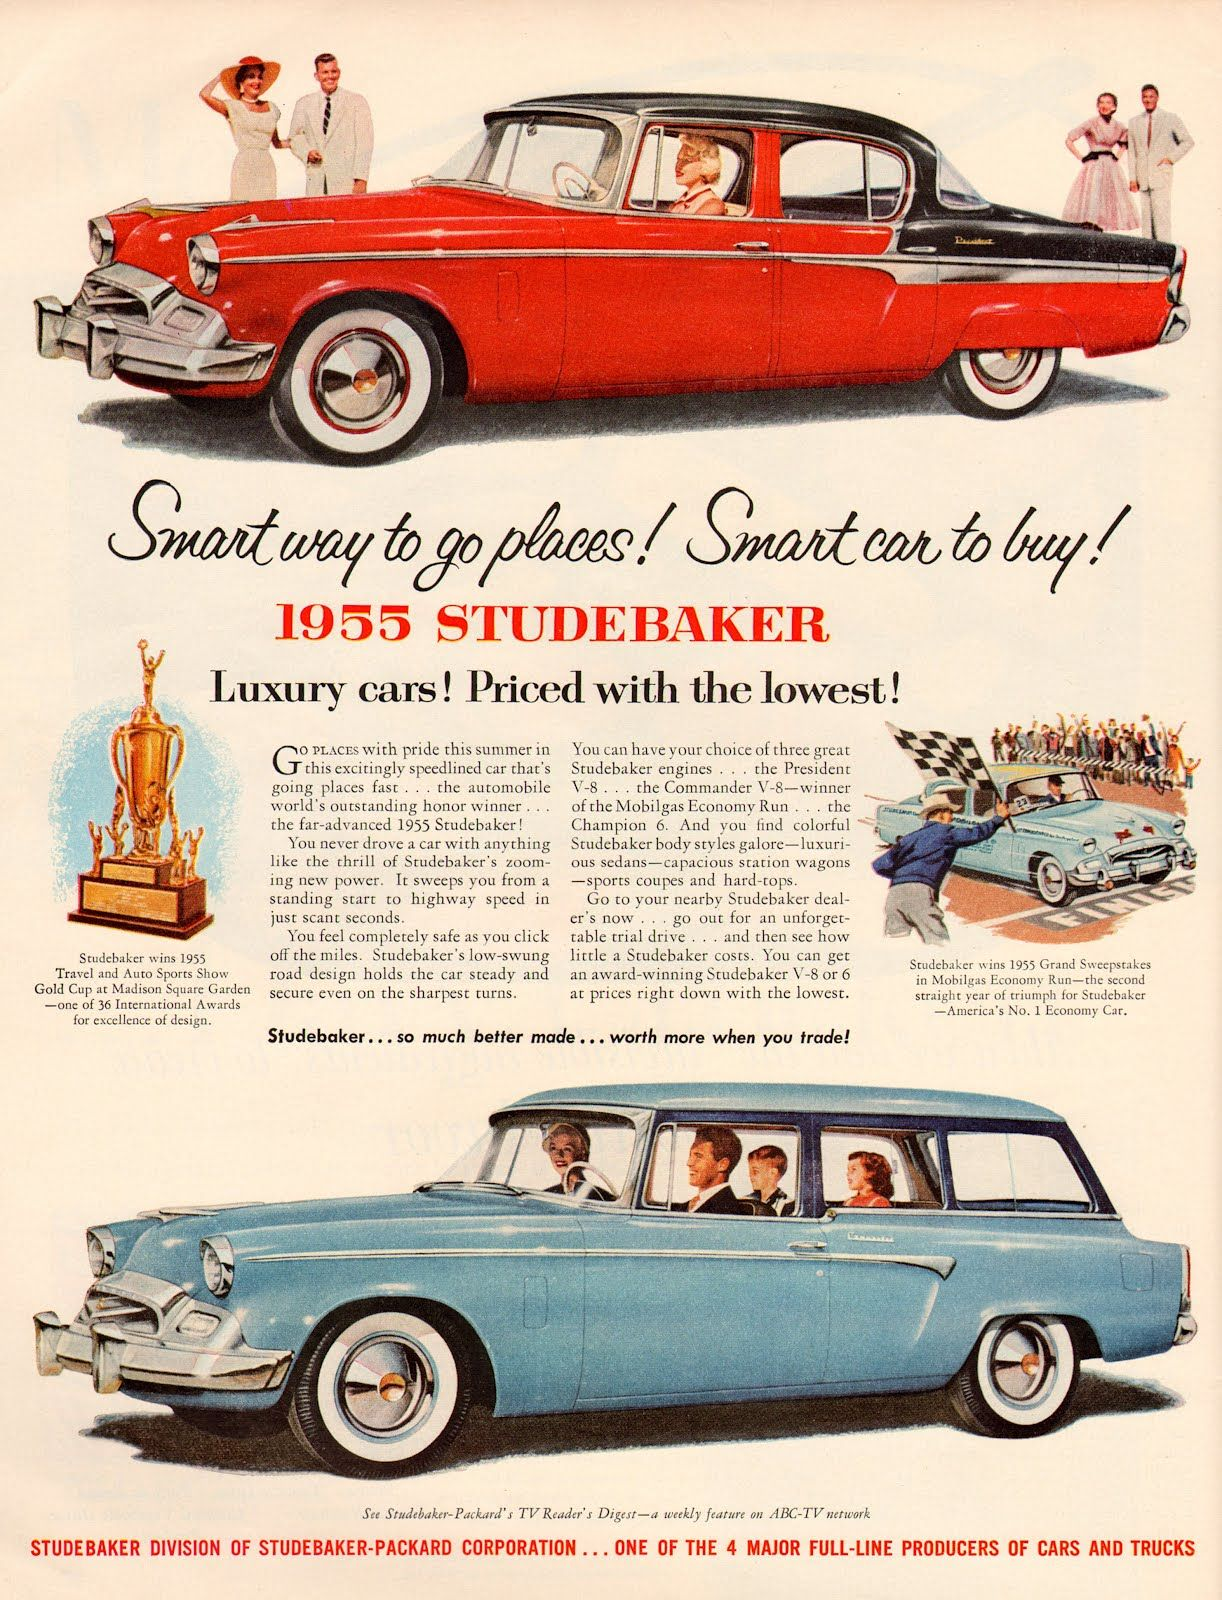 Studebaker - my favorite car as a child. I remember this car fondly ...